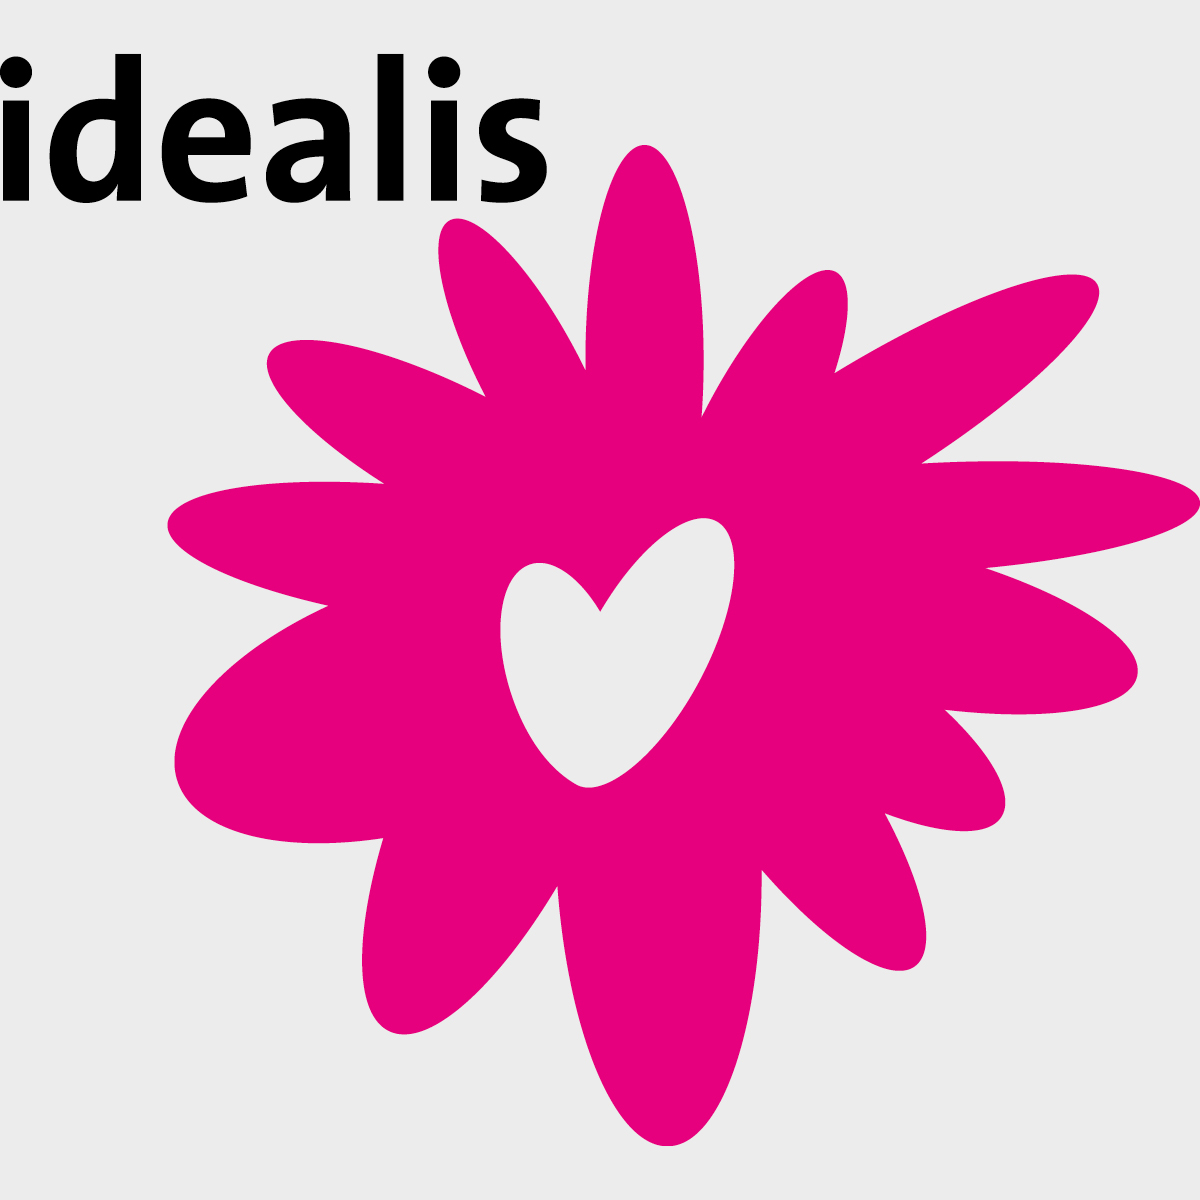 Idealis | Creative Digital Agency Puntkomma Nijmegen